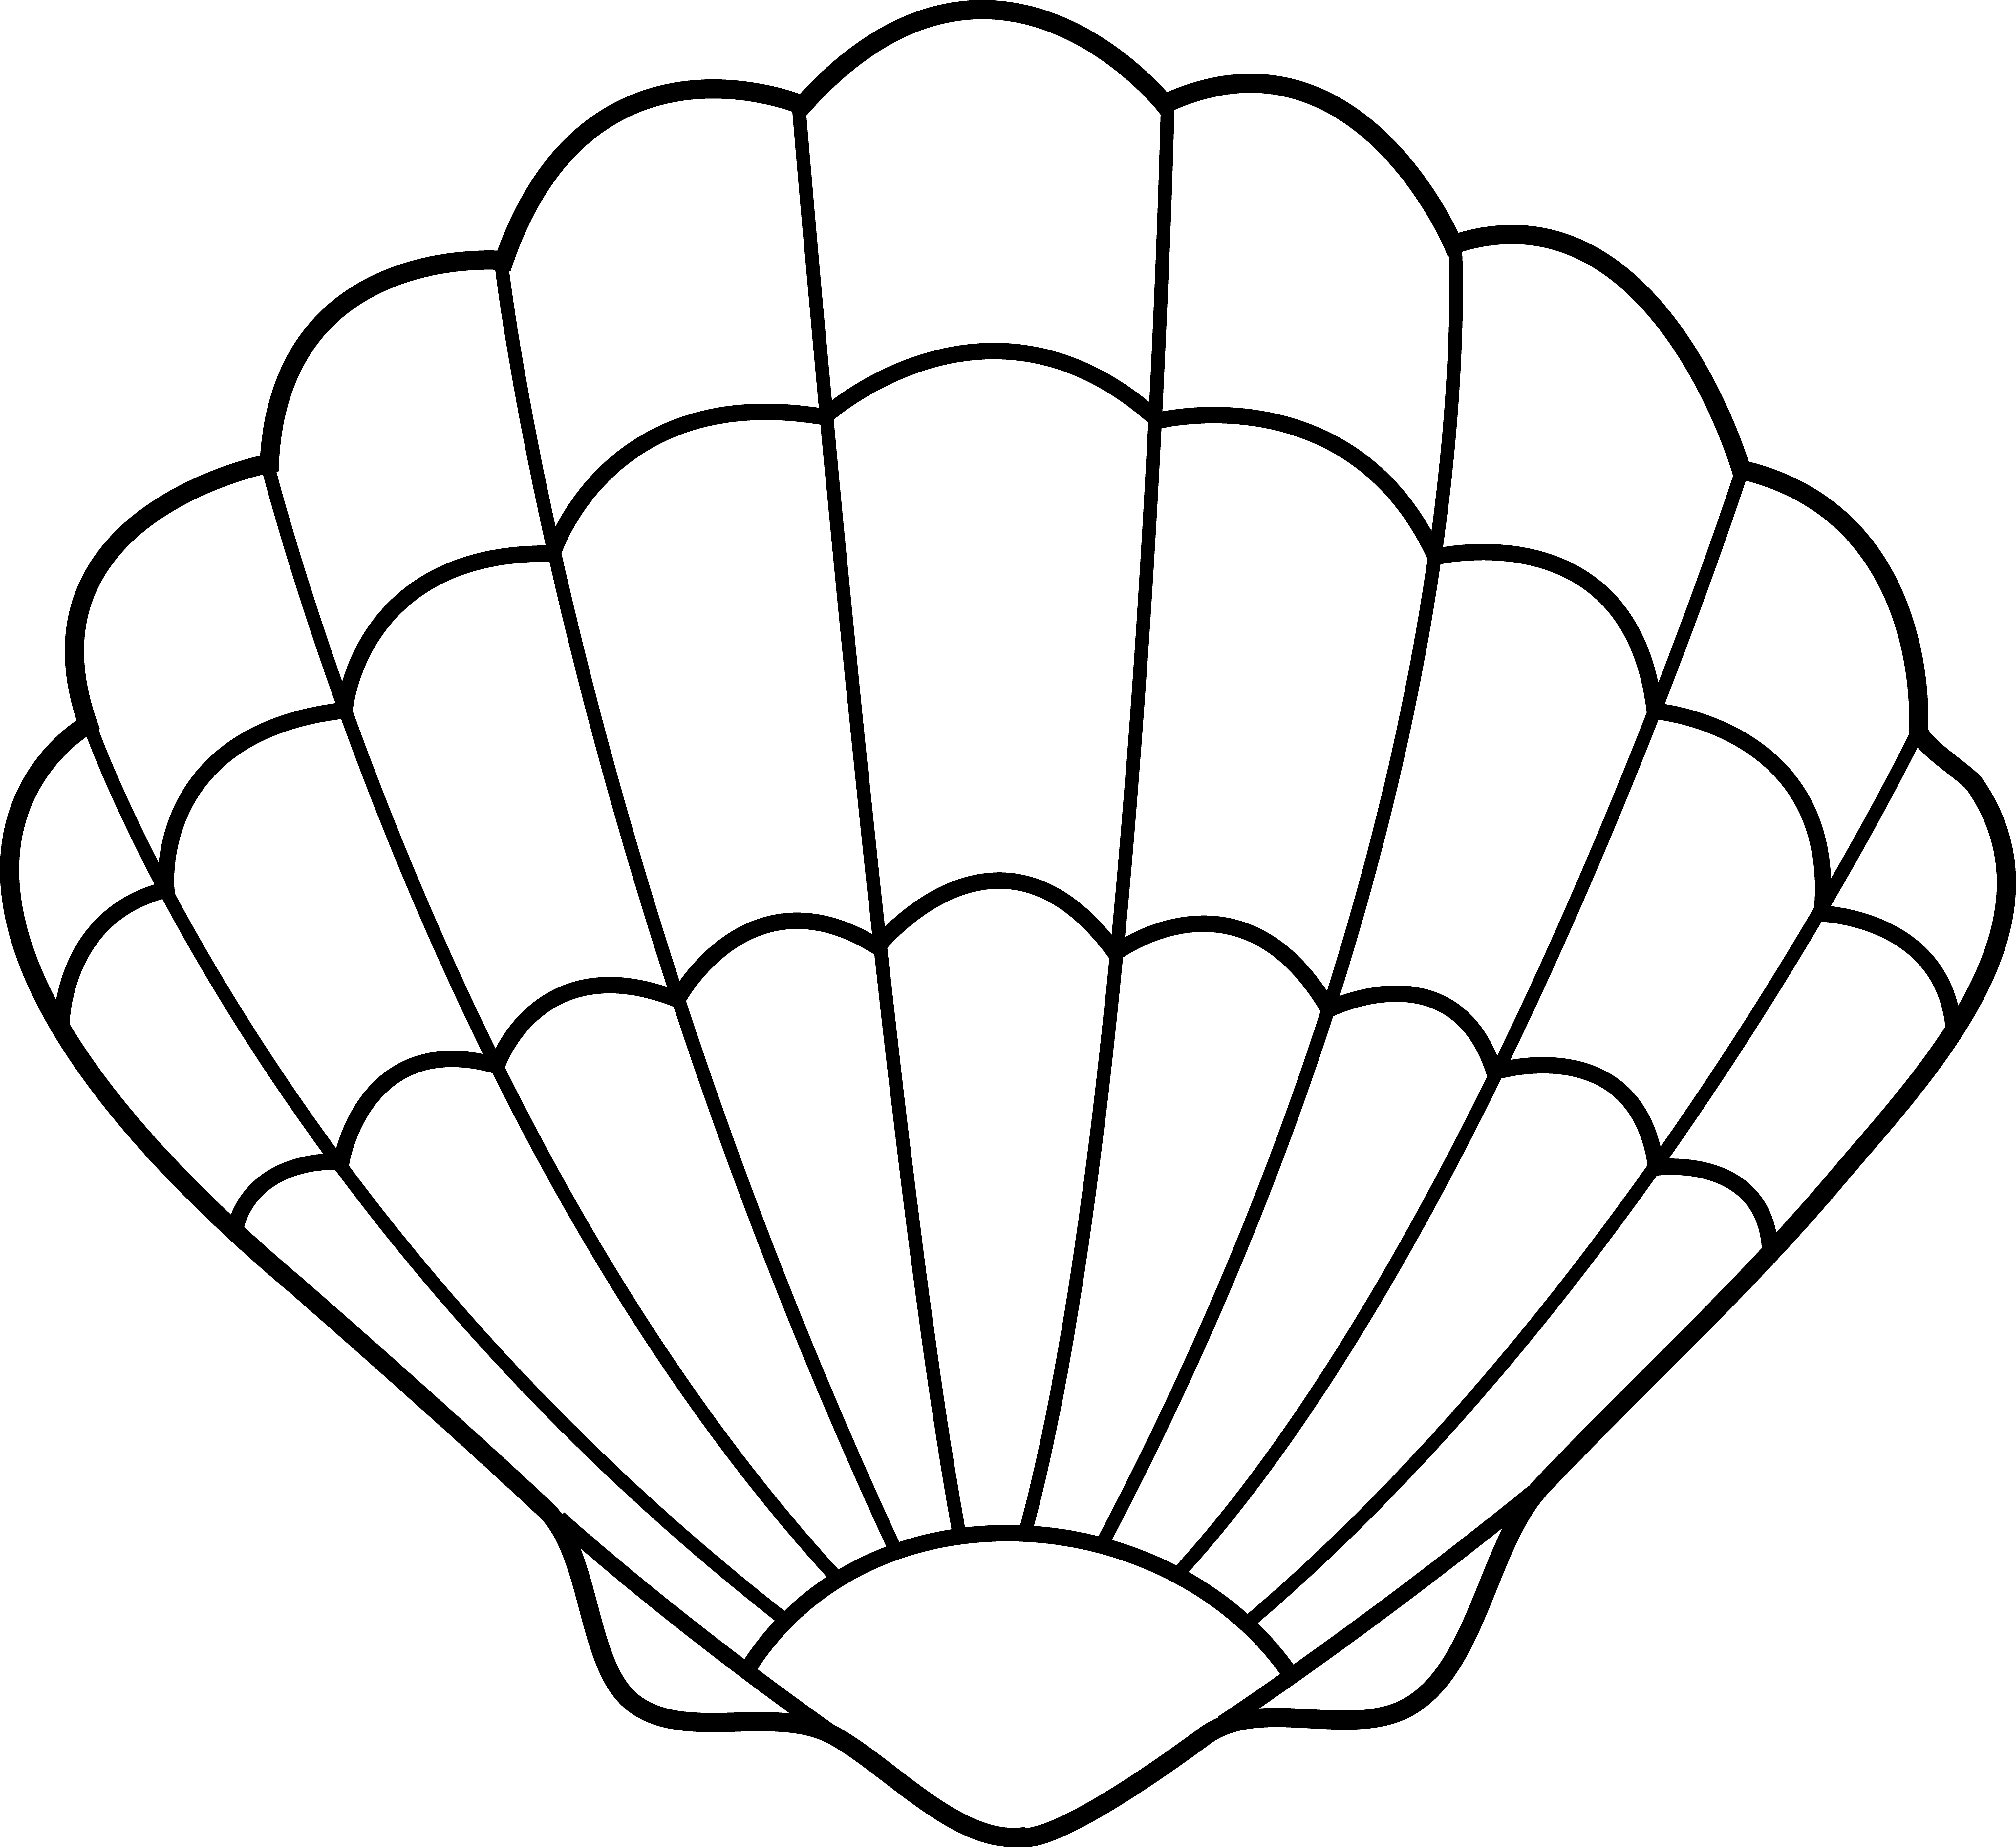 royalty free stock Colorable Seashell